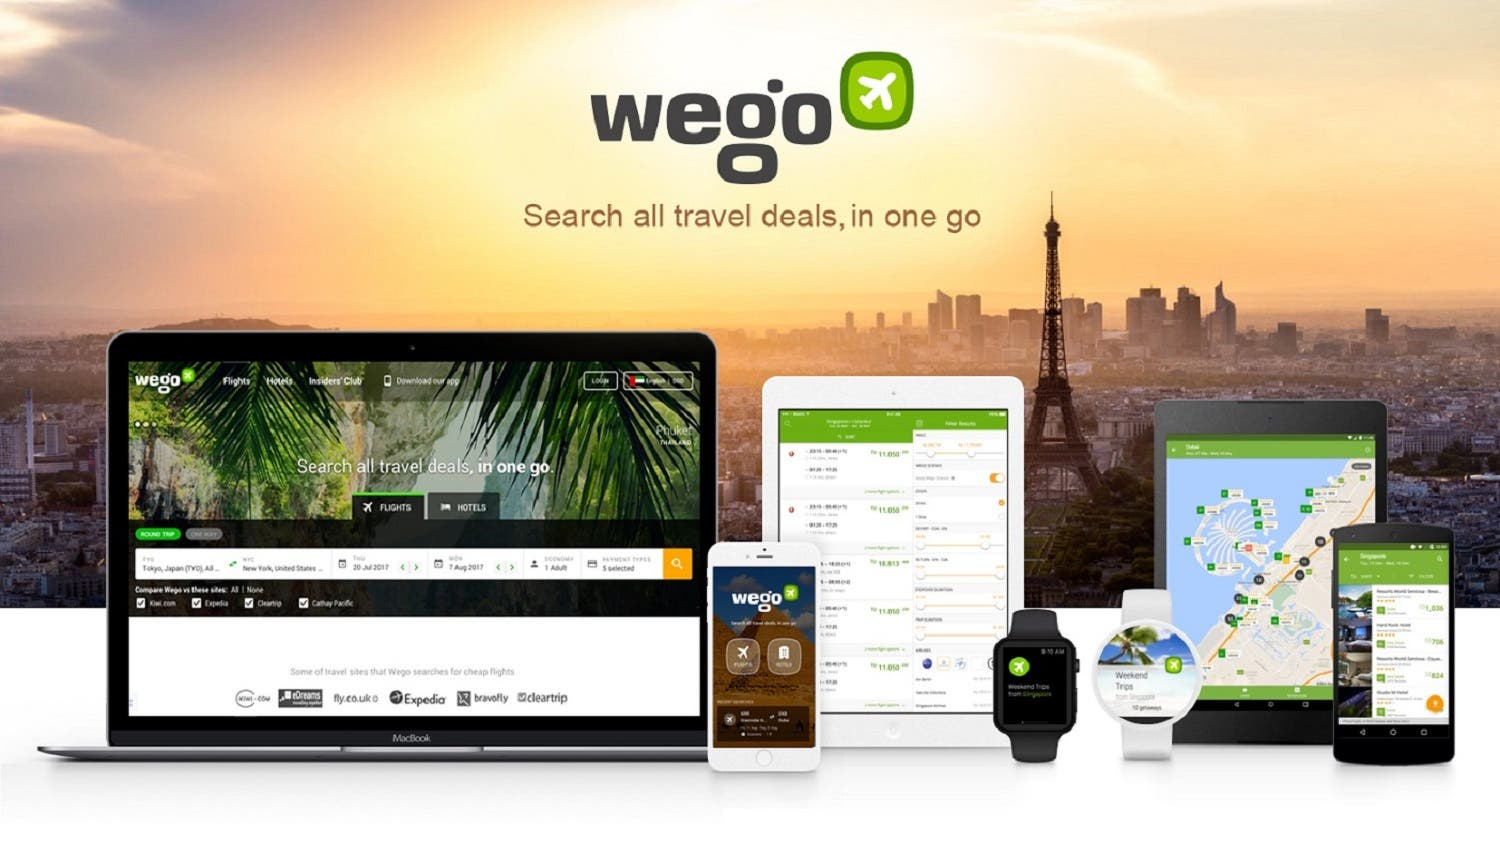 Wego has over 10 million monthly visits by collaborating with over 700 local and global airlines, hotels and online travel agents. (Supplied)